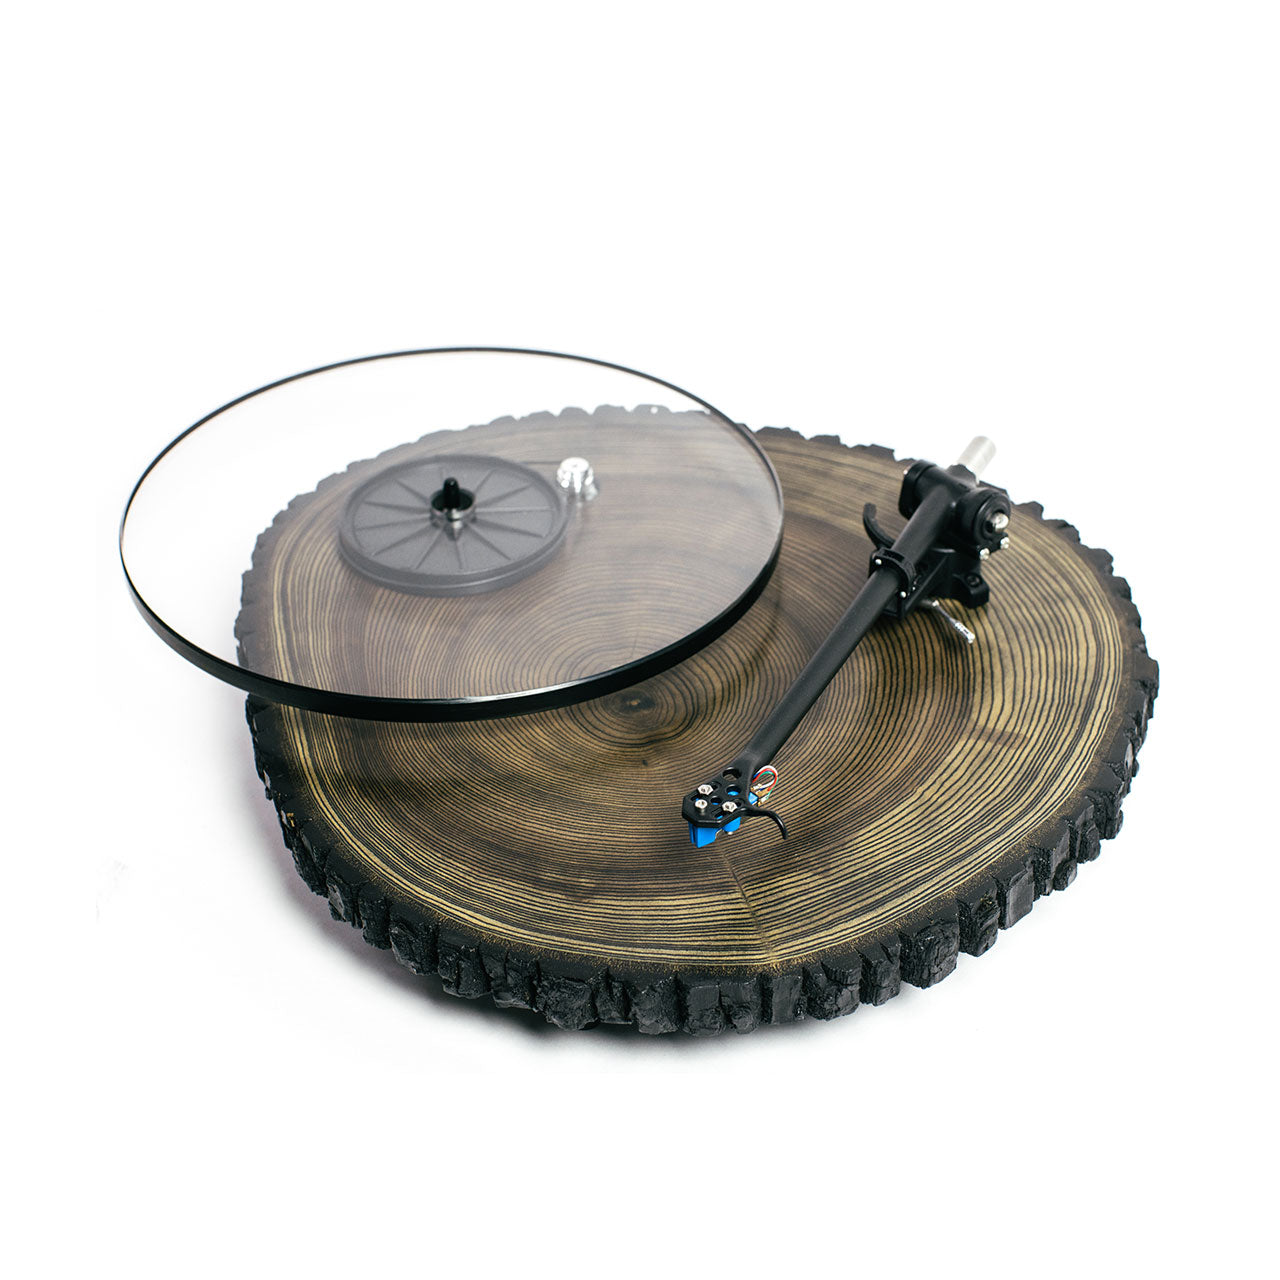 Audiowood x Uncrate Barky Turntable